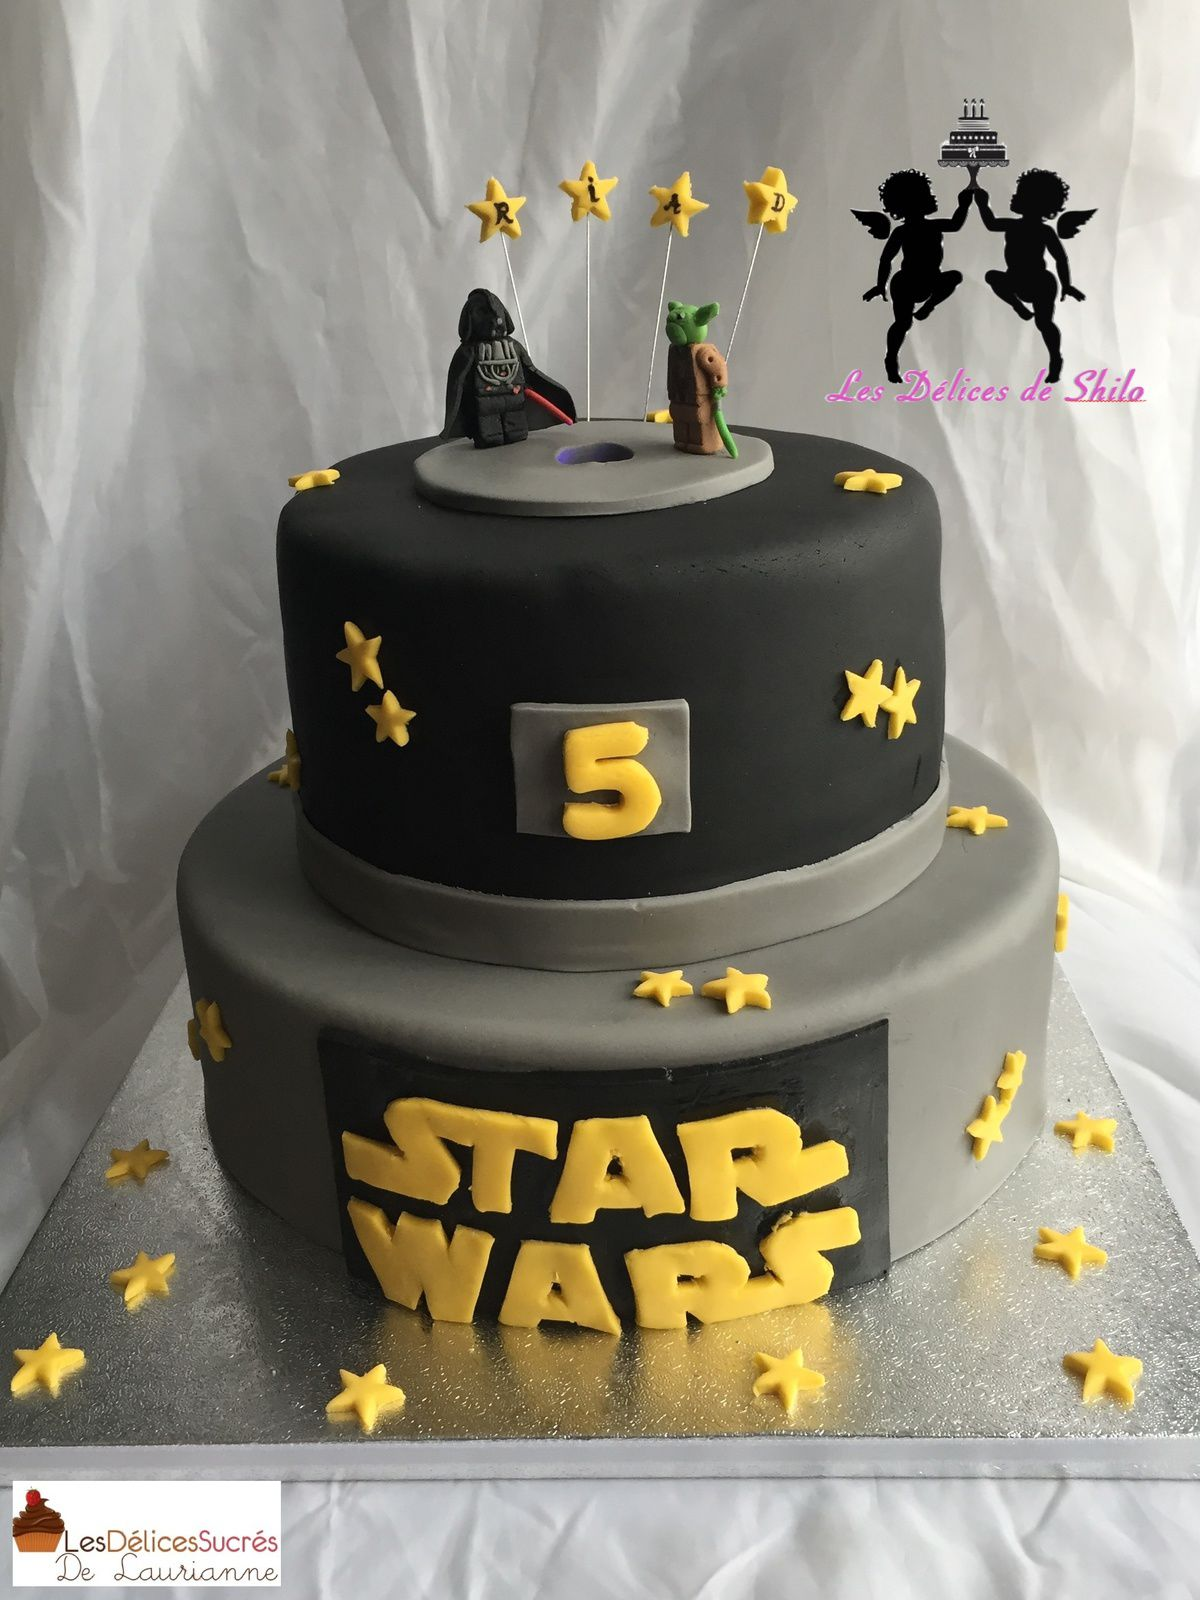 gateau star wars les d lices sucr s de laurianne. Black Bedroom Furniture Sets. Home Design Ideas